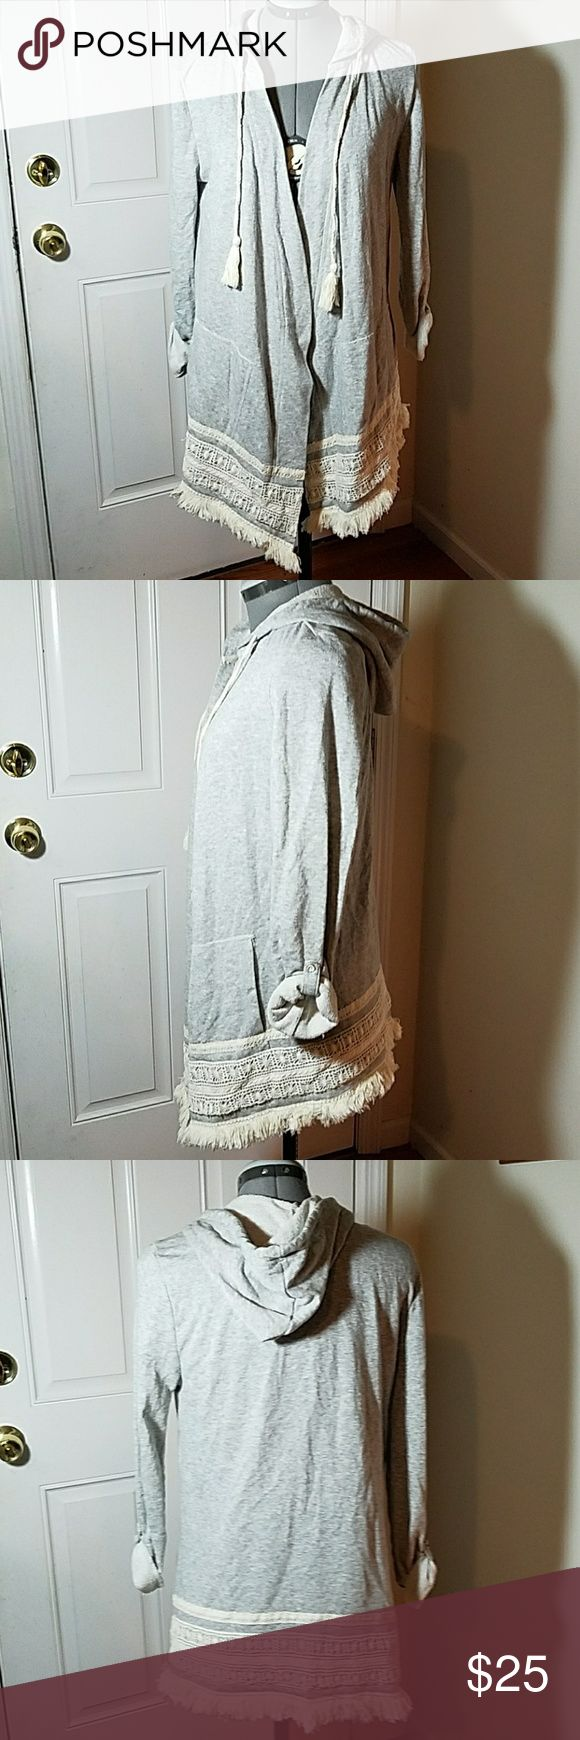 Democracy Boho Gray Fringed Hooded Open Jacket S This open jacket is the perfect piece to complete any casual ensemble!? Darling cream lace and fringe adorn the hemline.? It has a hood with a drawstring tie.? There are side pockets in front.? The sleeves have a buttoned rolled effect.? Super soft!  - 63% cotton/ 37% polyester  - Machine wash  - Imported democracy  Jackets & Coats Utility Jackets